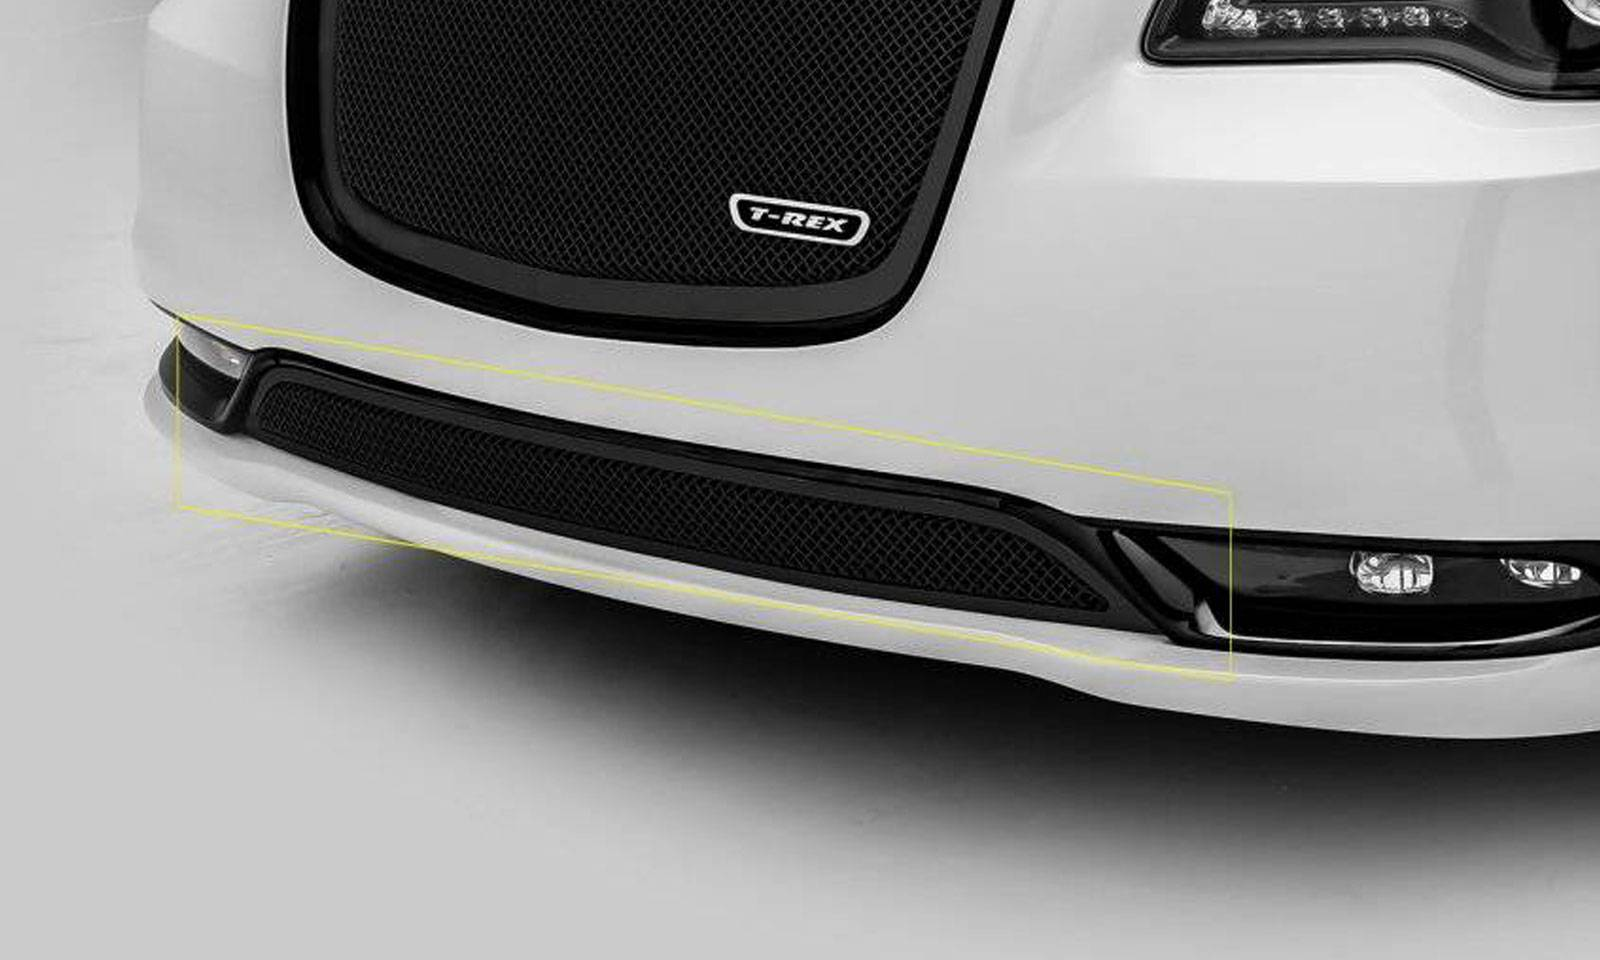 T-REX Grilles - 2015-2018 Chrysler 300 Upper Class Series Bumper Grille, Black, 1 Pc, Overlay, Only fits models without adaptive cruise control - PN #52436